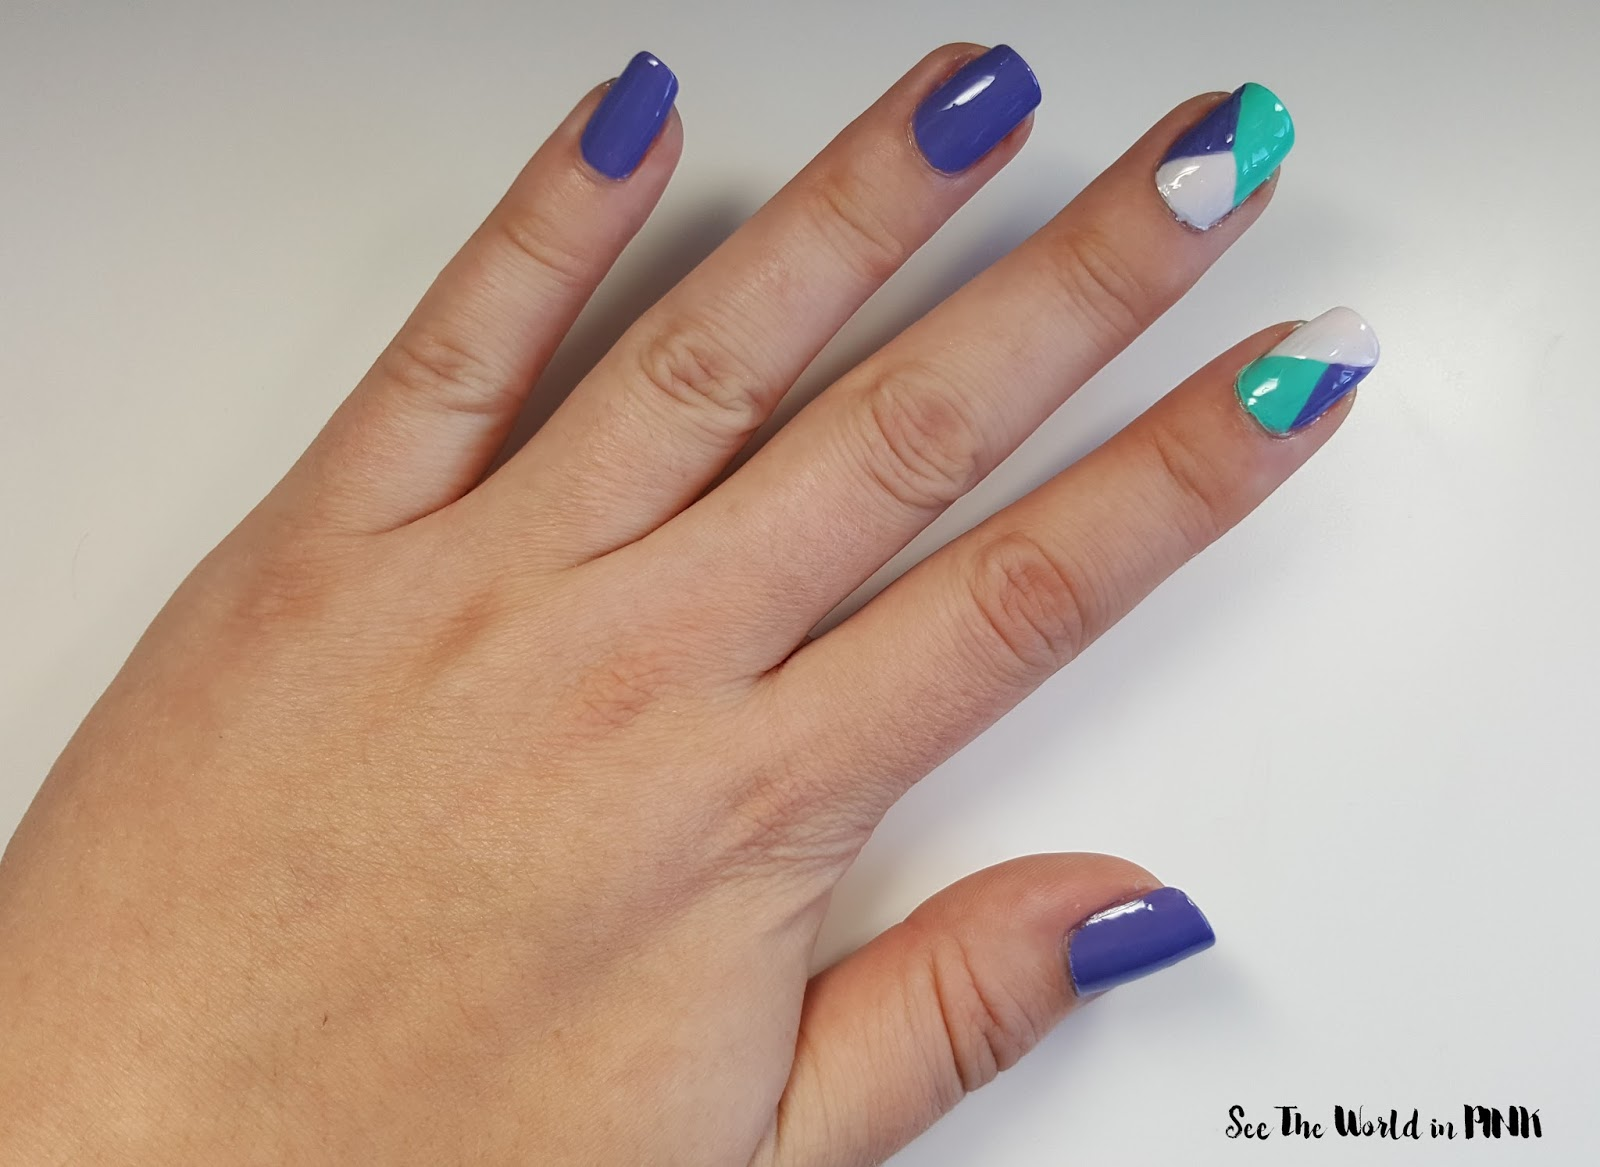 Manicure Tuesday - Geometric Color Block Nails